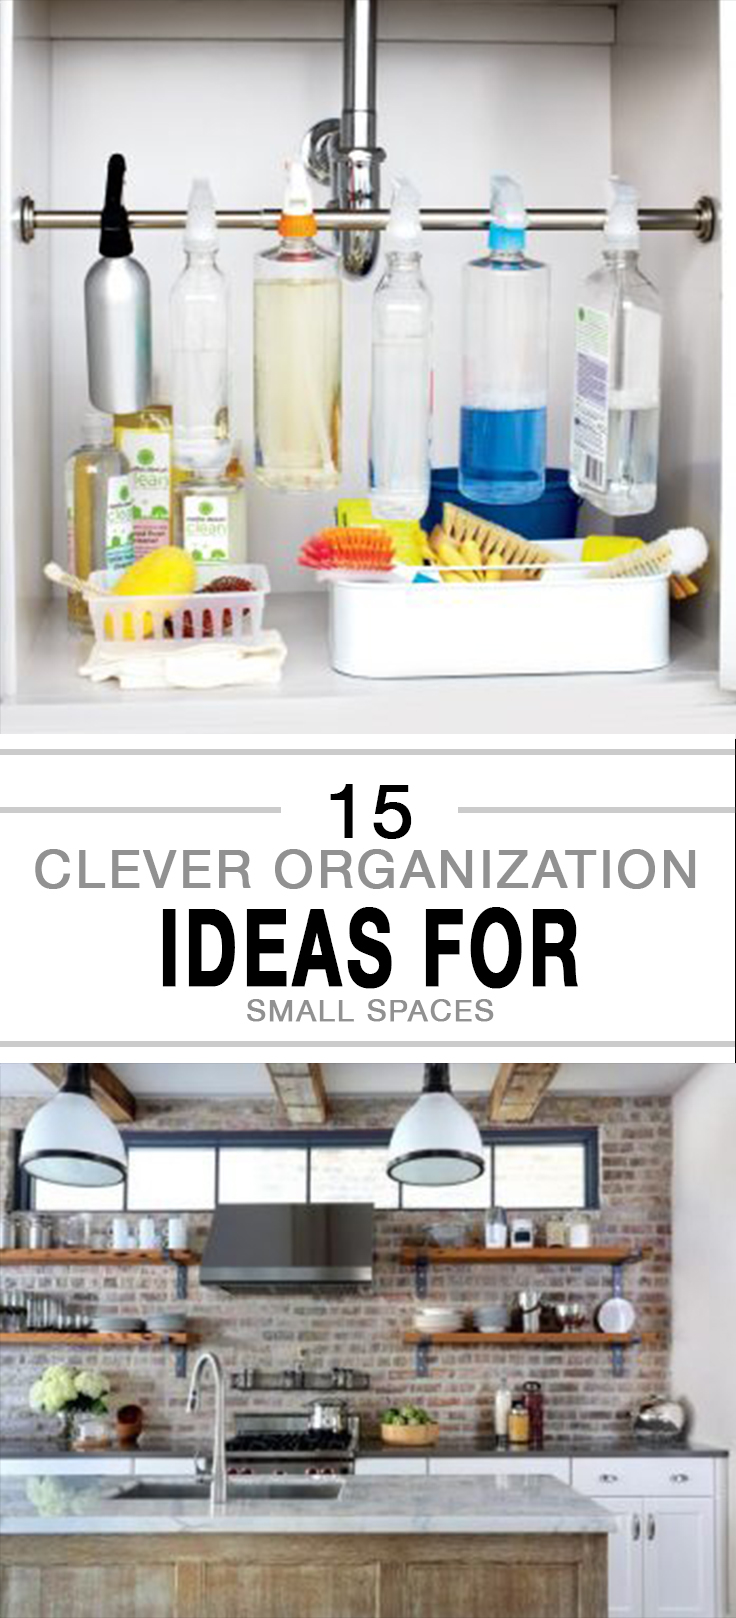 15 Clever Organization Ideas for Small Spaces -